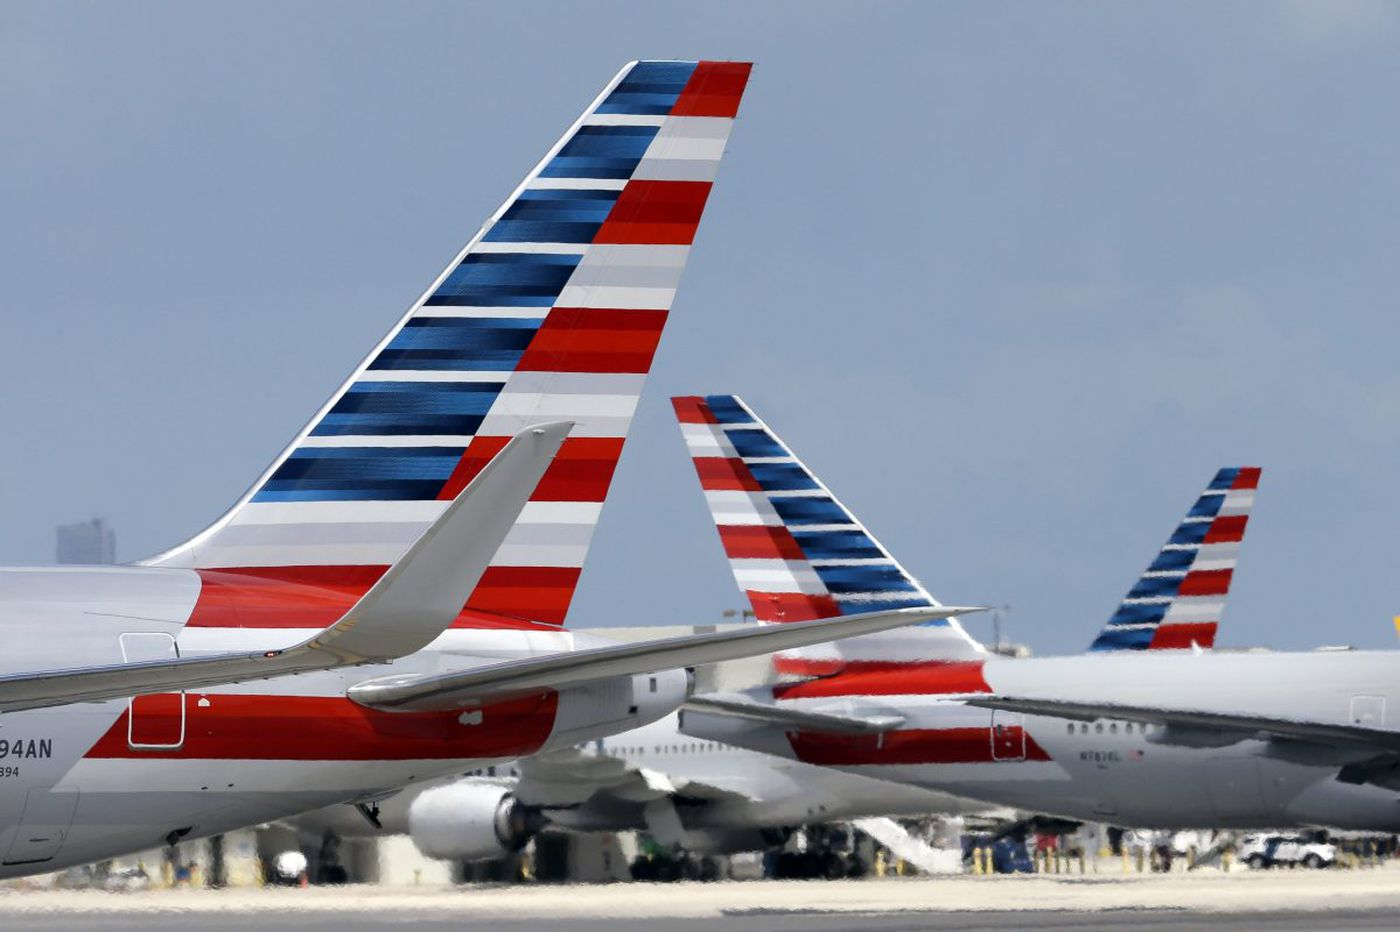 American Airlines trims seats by 4% in Philly, while promising new 2018 international flights